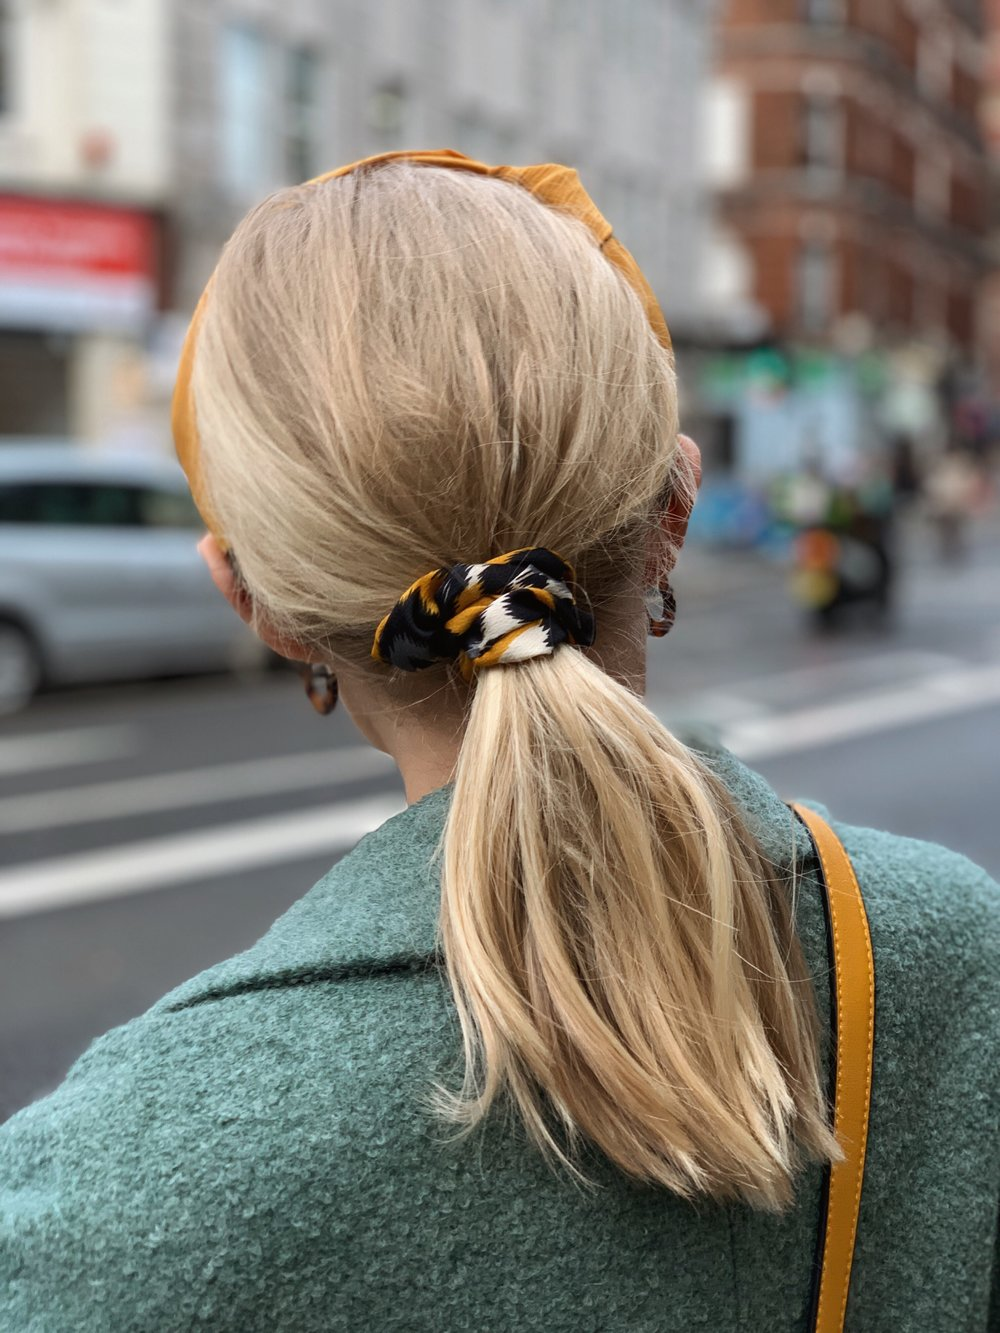 IT'S ALL IN THE DETAILS - Find the hair band hereFind the Scrunchie hereFind the earrings here